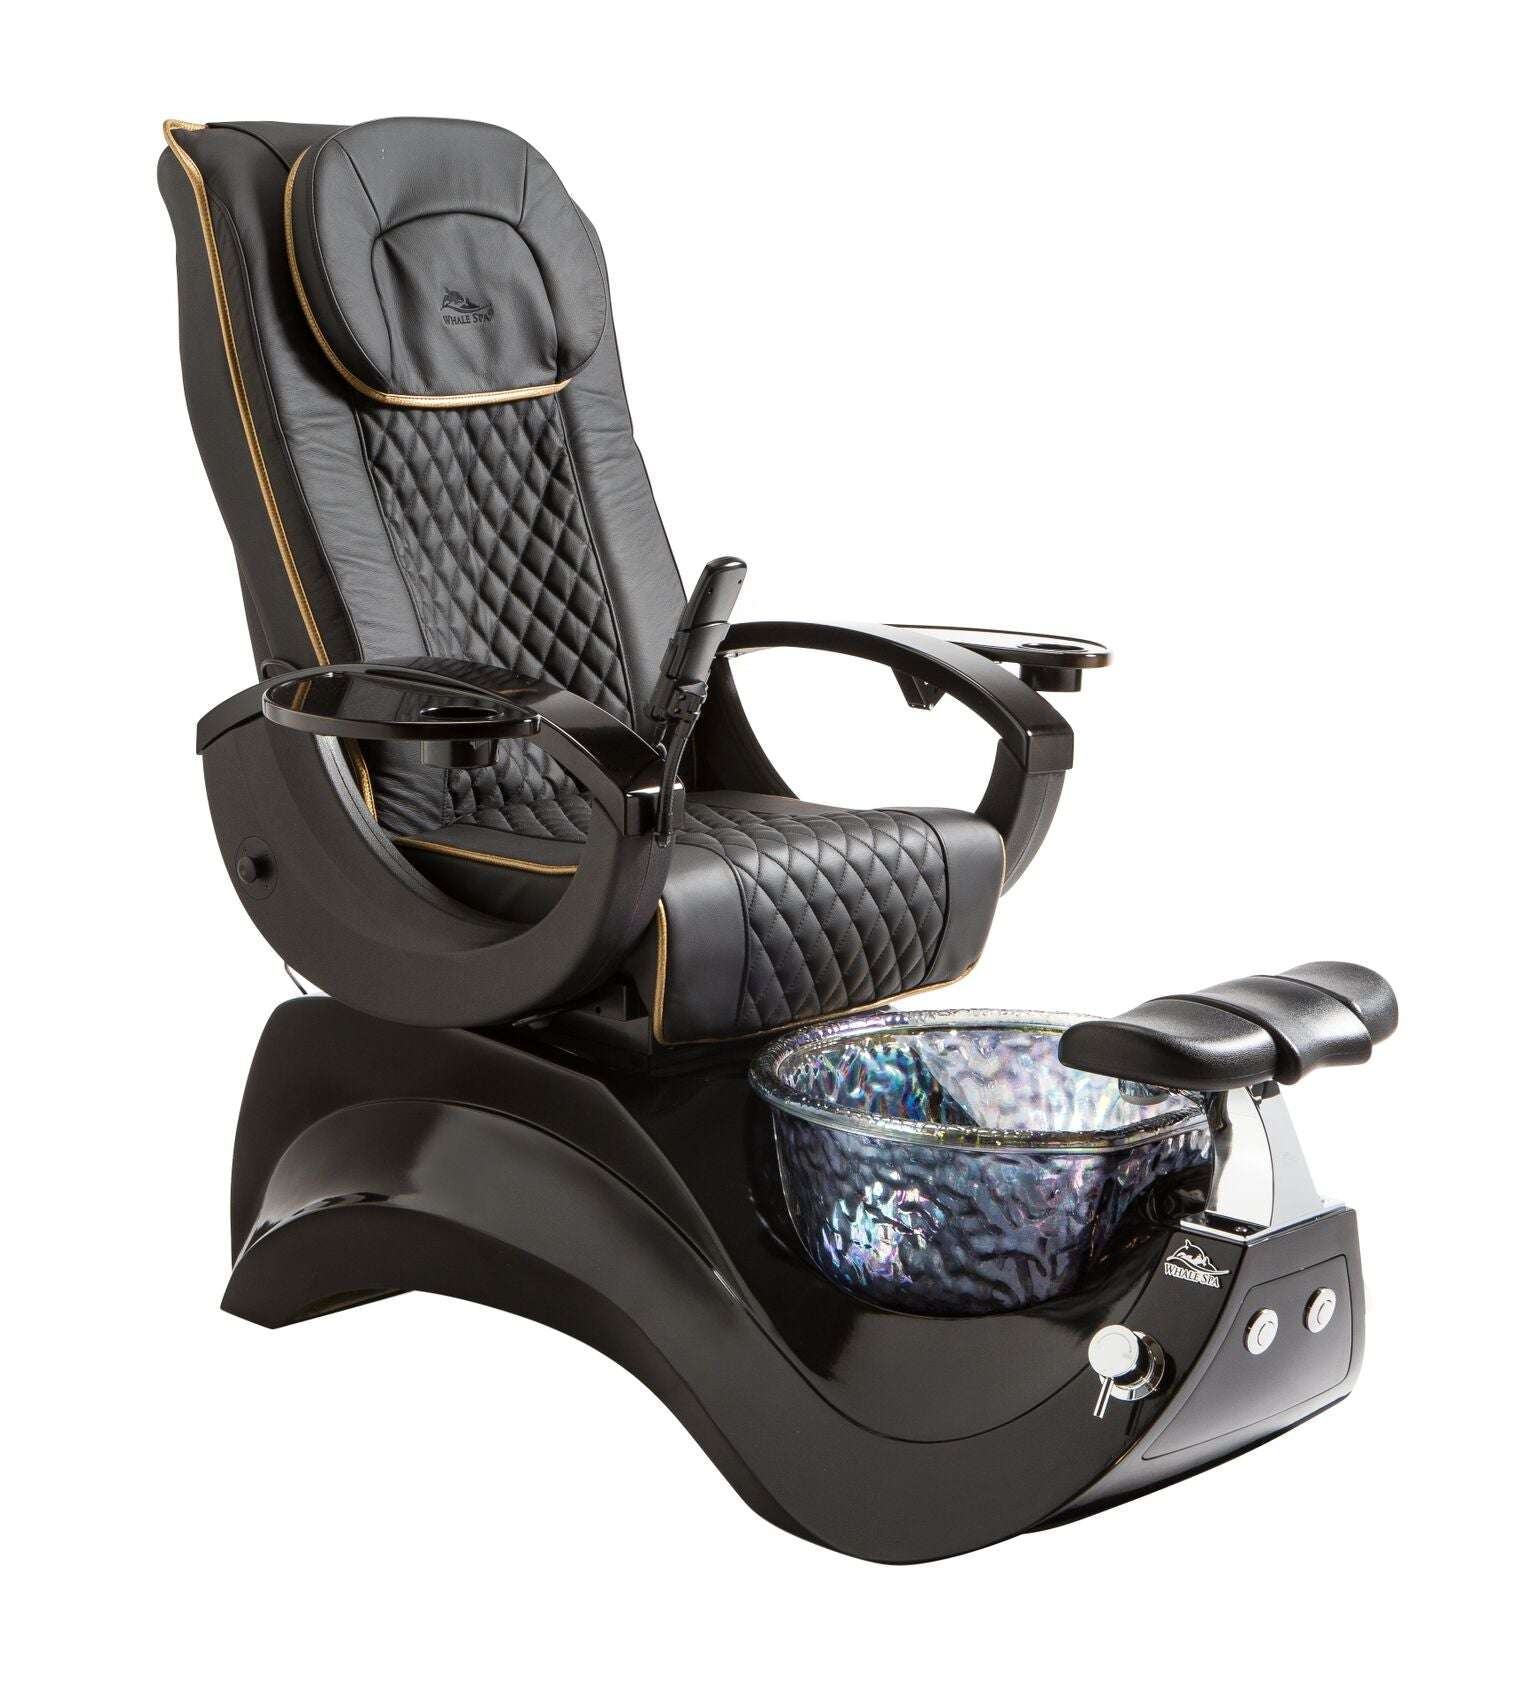 ... Whale Spa - Alden Crystal Pedicure Spa Chair With Premium Leather ...  sc 1 st  Lee Nail Supply & Whale Spa - Alden Crystal Pedicure Spa Chair